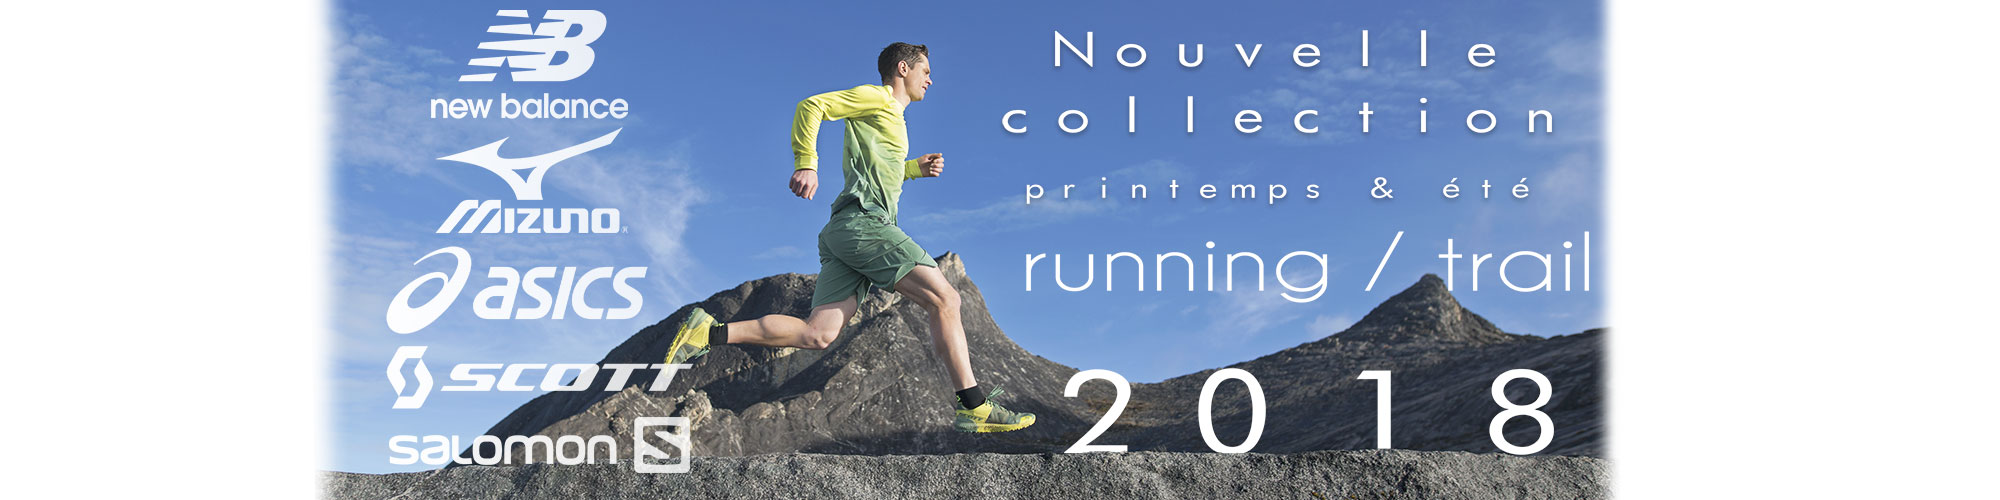 nouvelle-collection-running-2018-pc